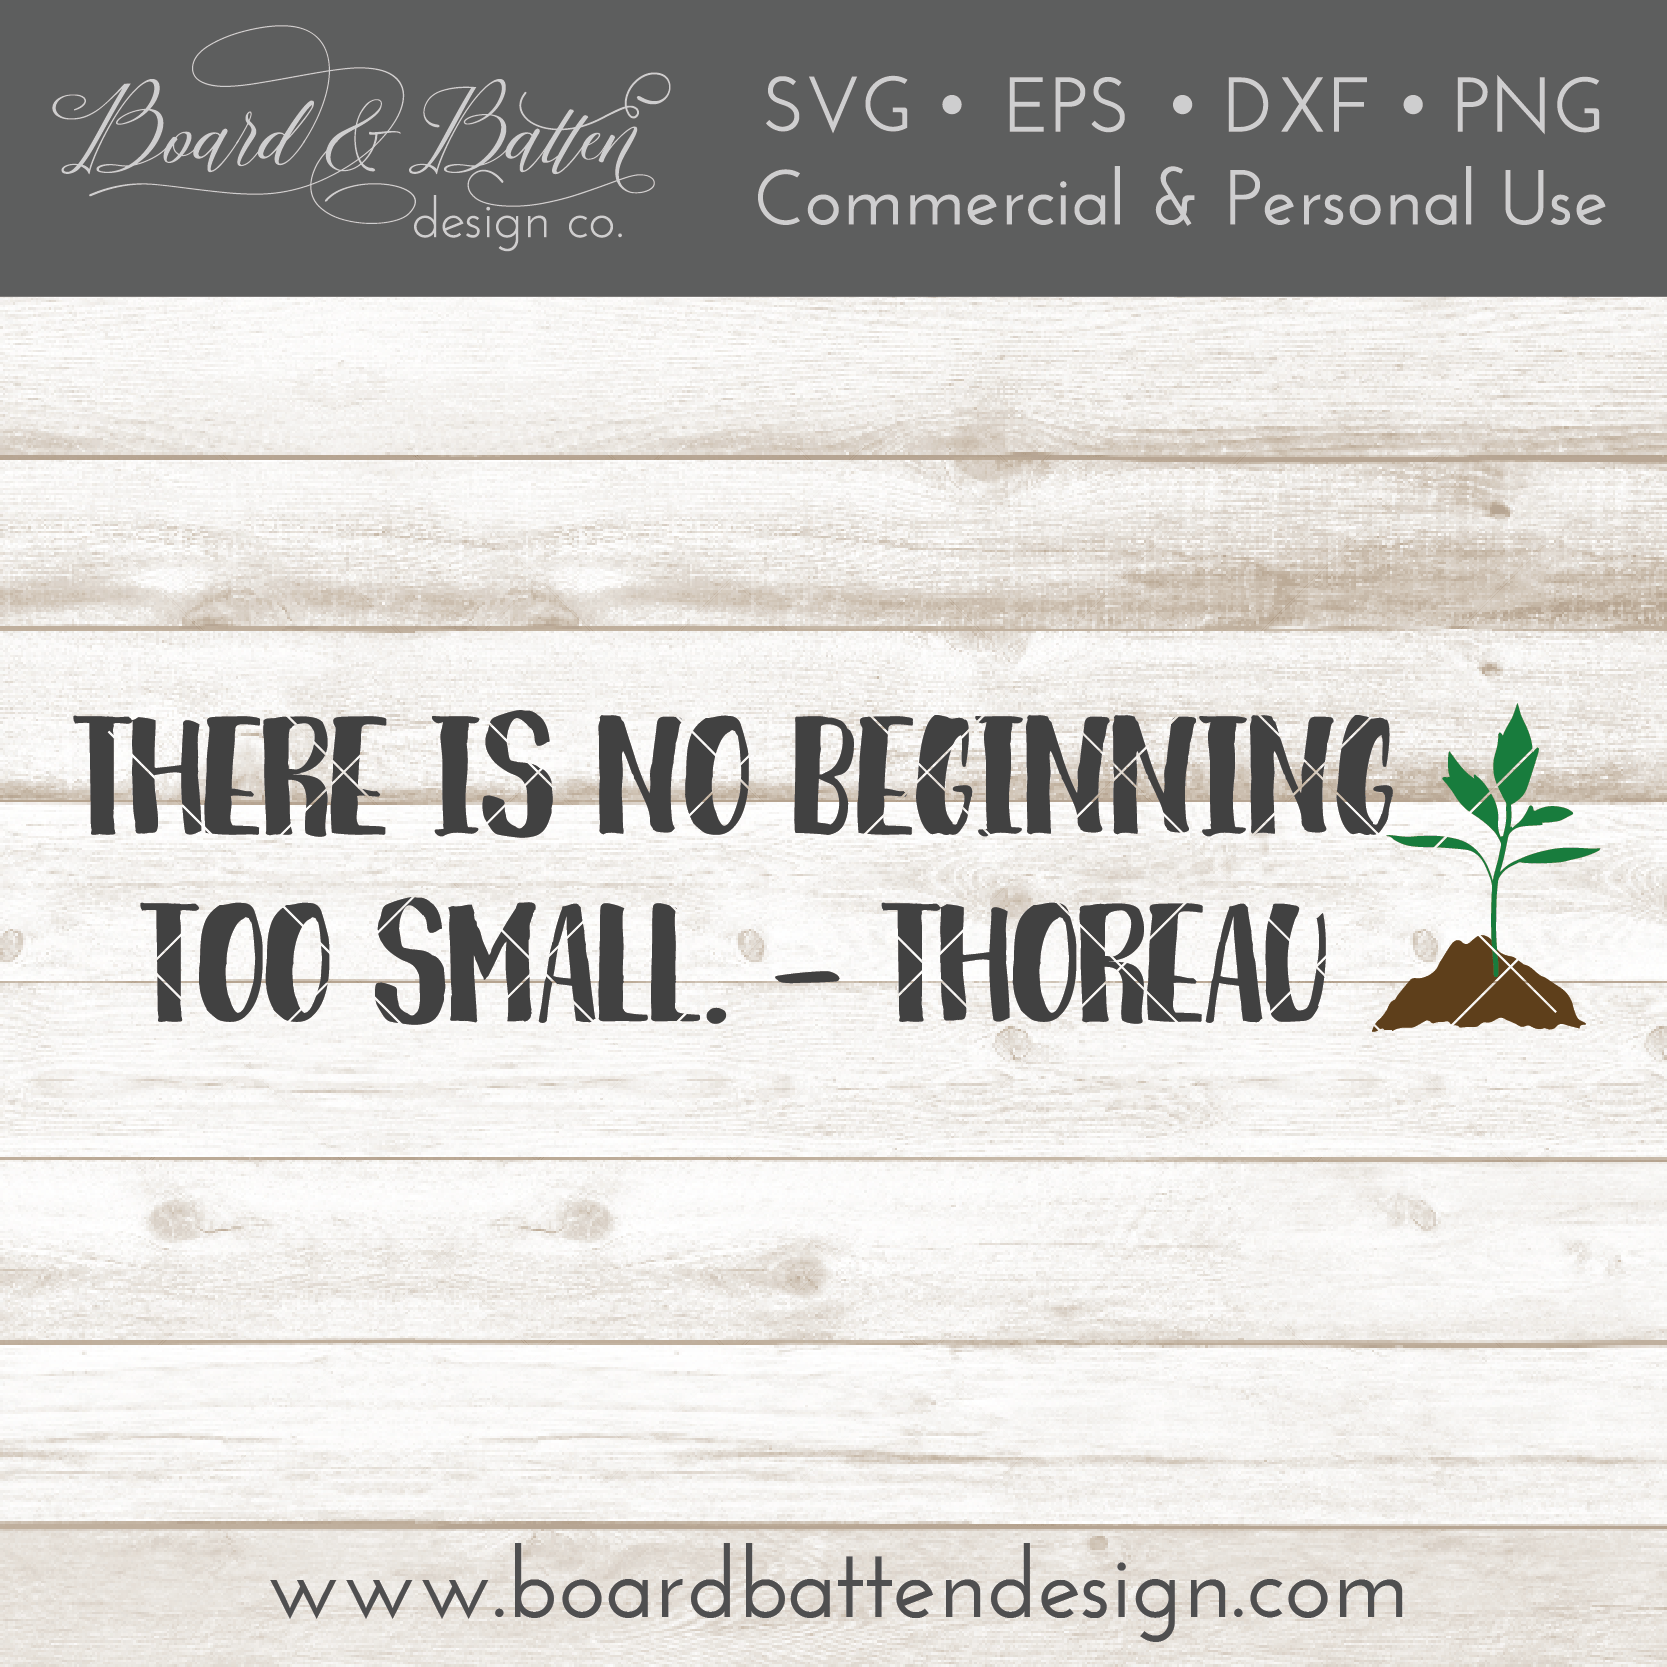 There Is No Beginning Too Small Thoreau Quote SVG File - Commercial Use SVG Files